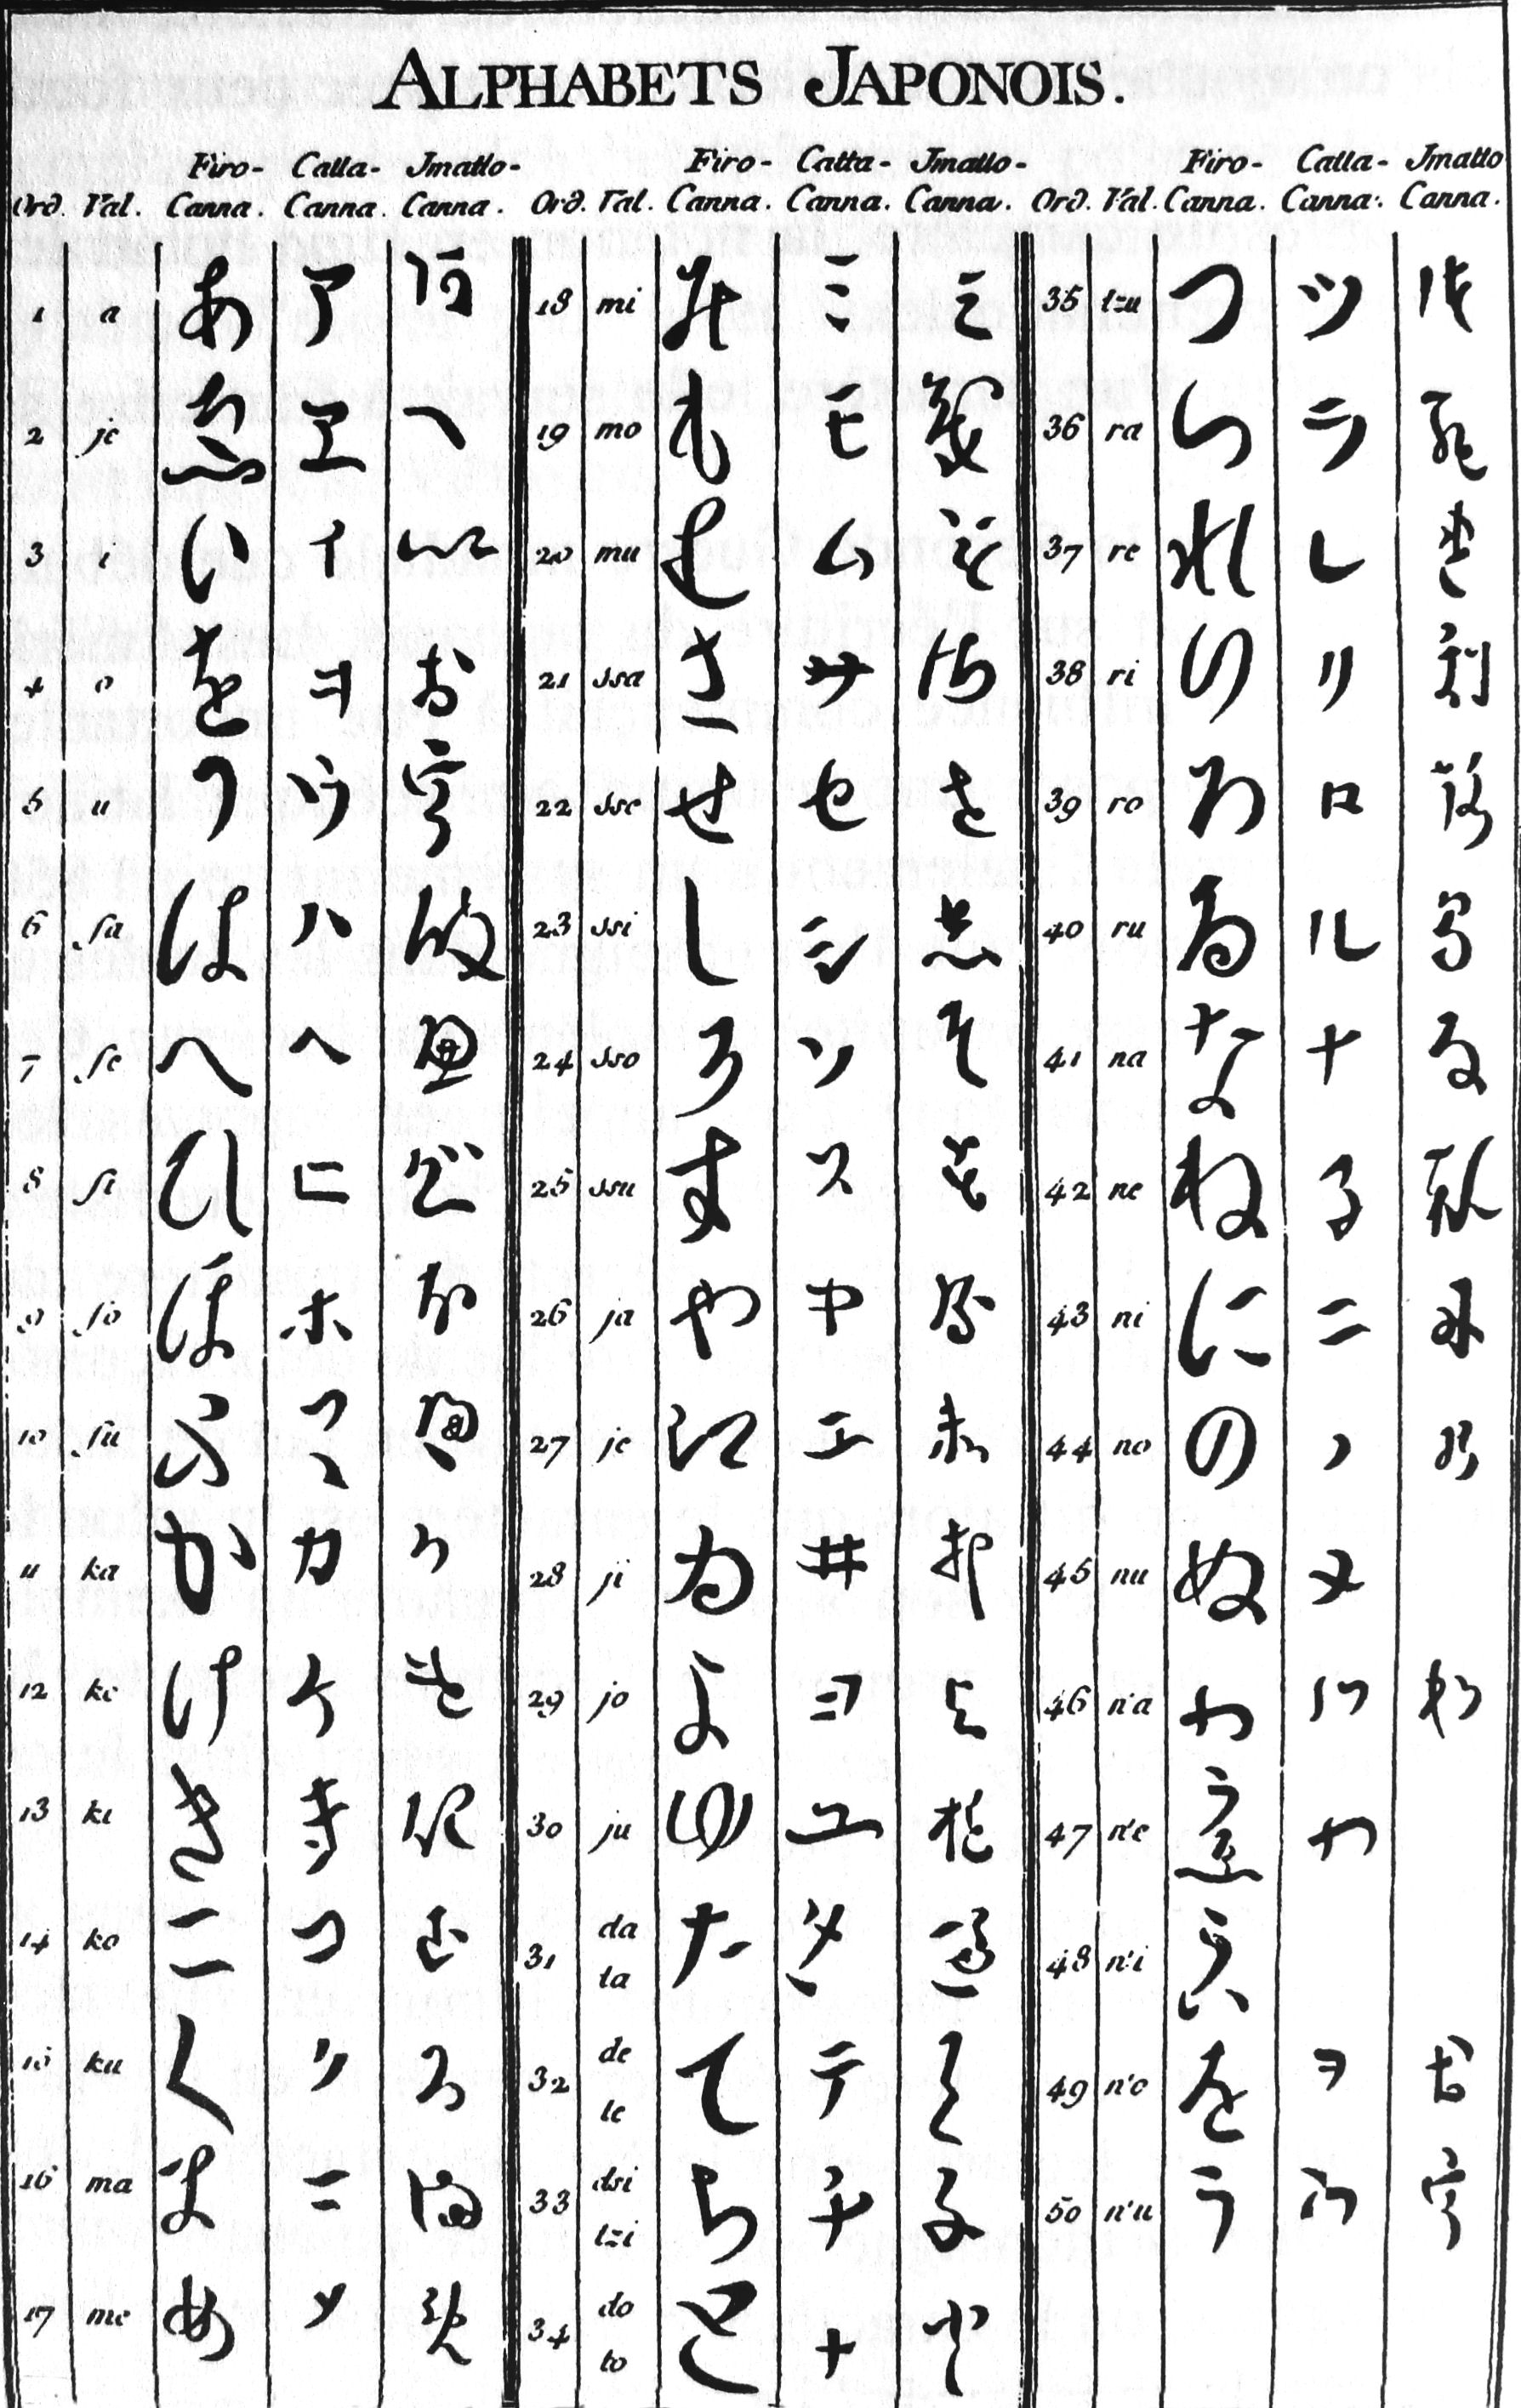 Filejapanese alphabet diderot encyclopedia 18th centuryg filejapanese alphabet diderot encyclopedia 18th centuryg thecheapjerseys Choice Image